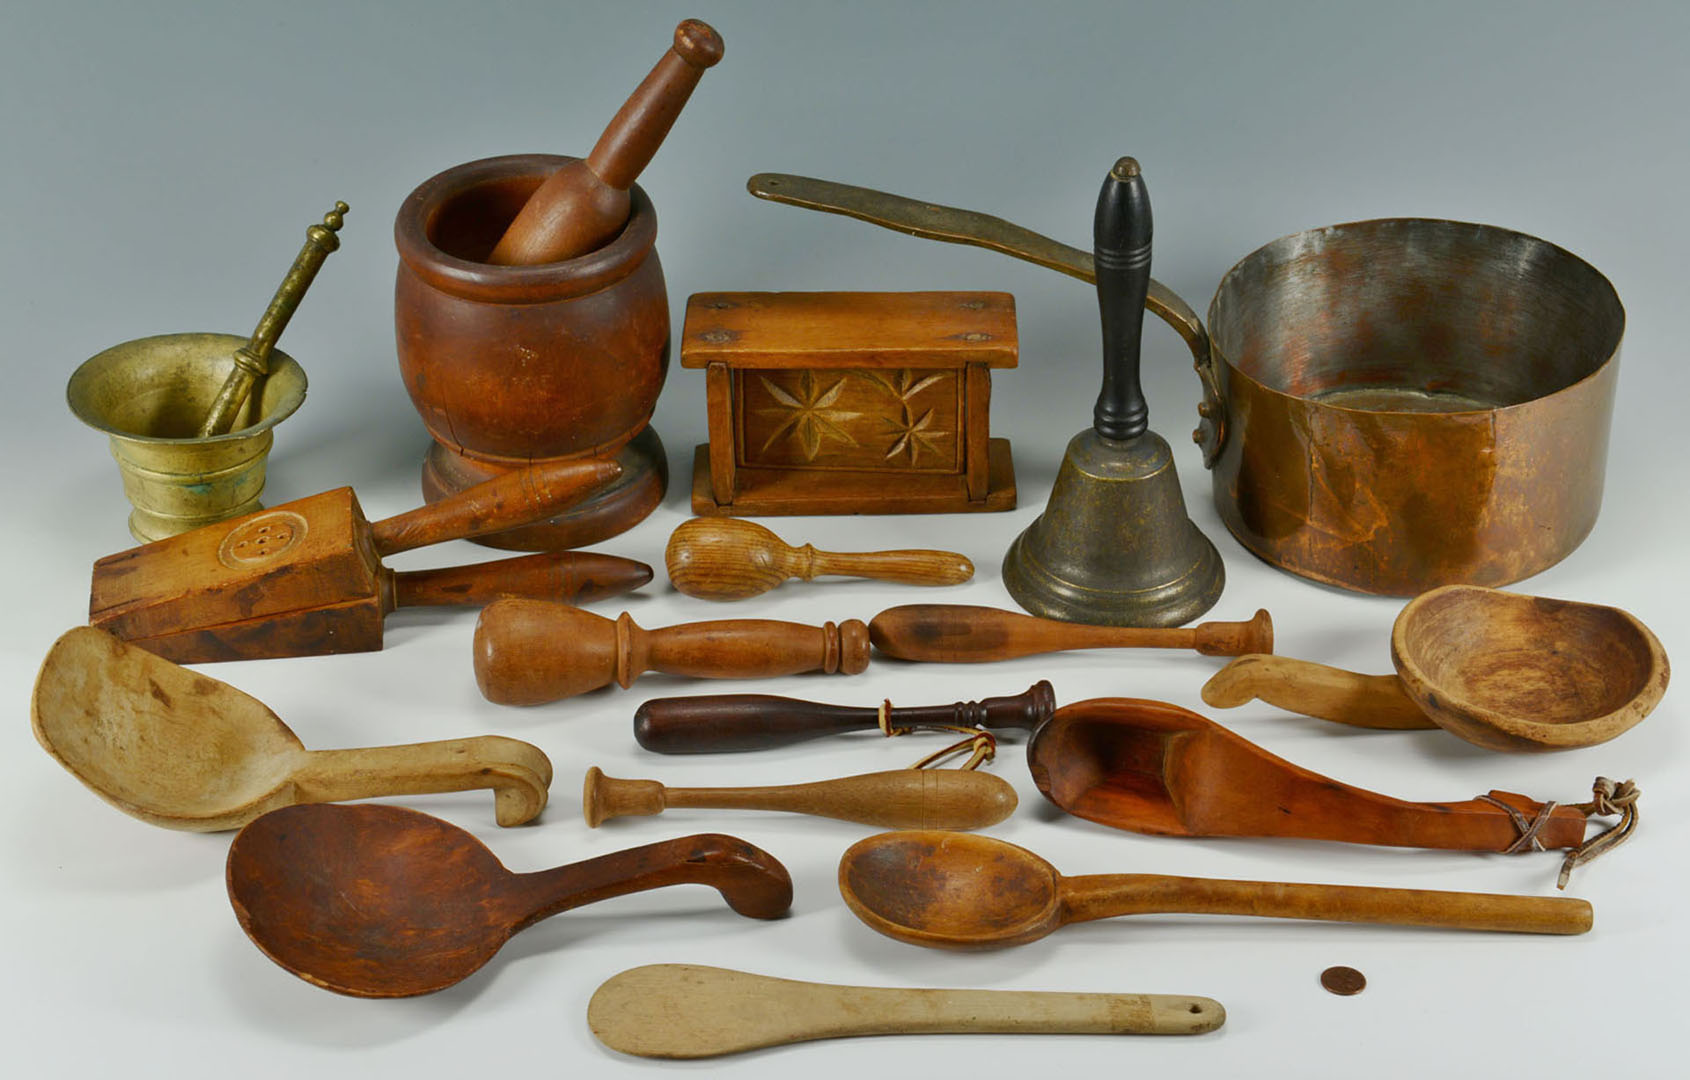 Lot 2872303: Grouping of 17 Kitchen Items, Mostly Wooden